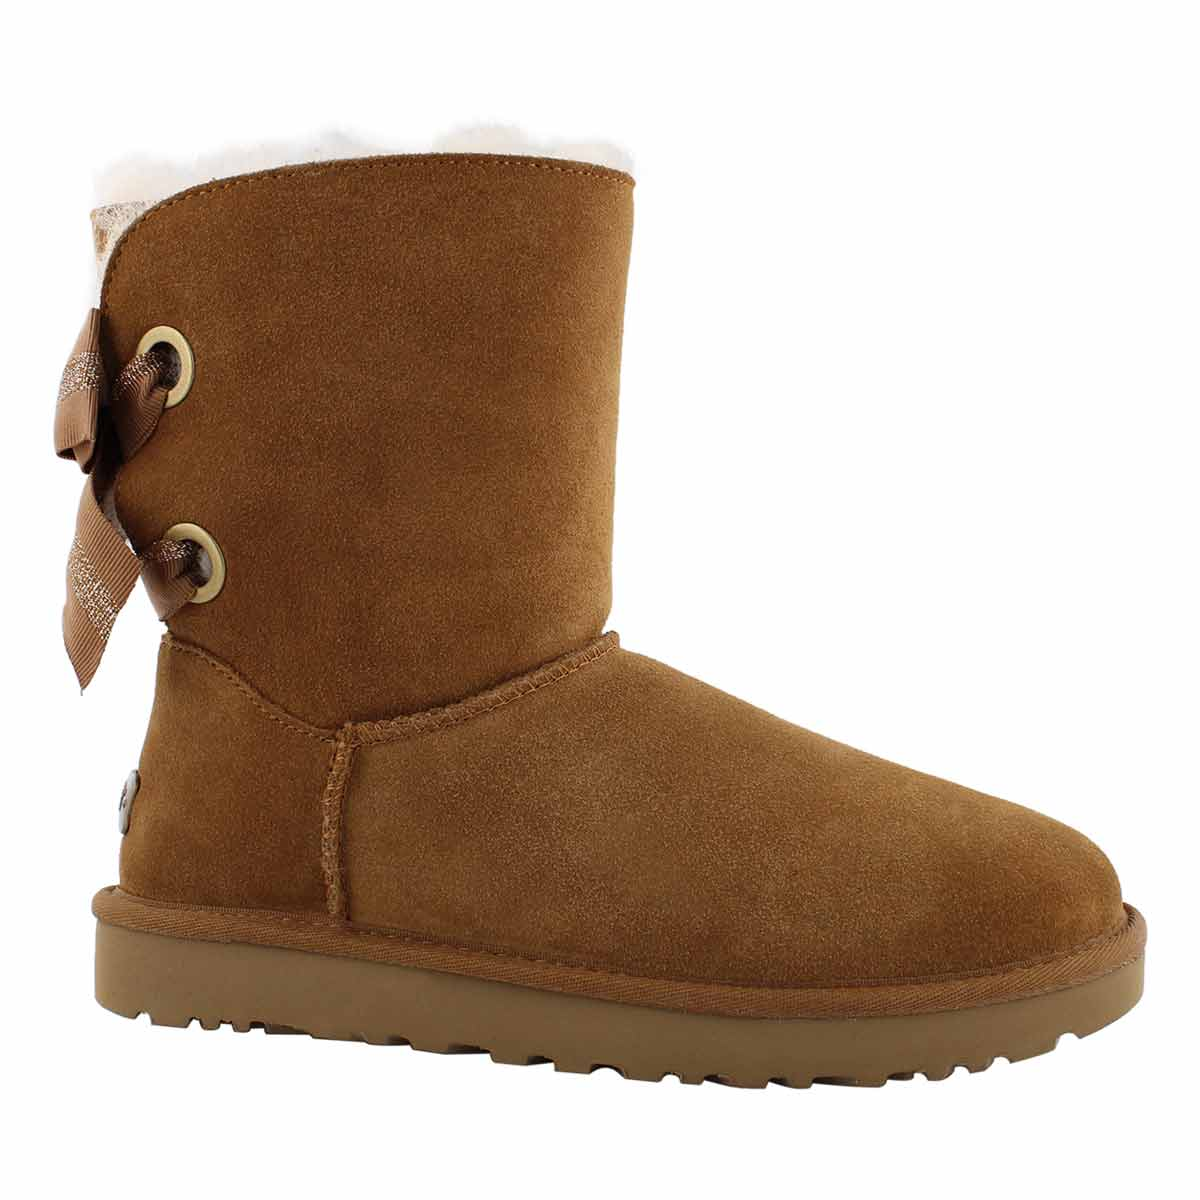 8092b9838e3 UGG Women's CUSTOM BAILEY BOW SHORT boots | Softmoc.com